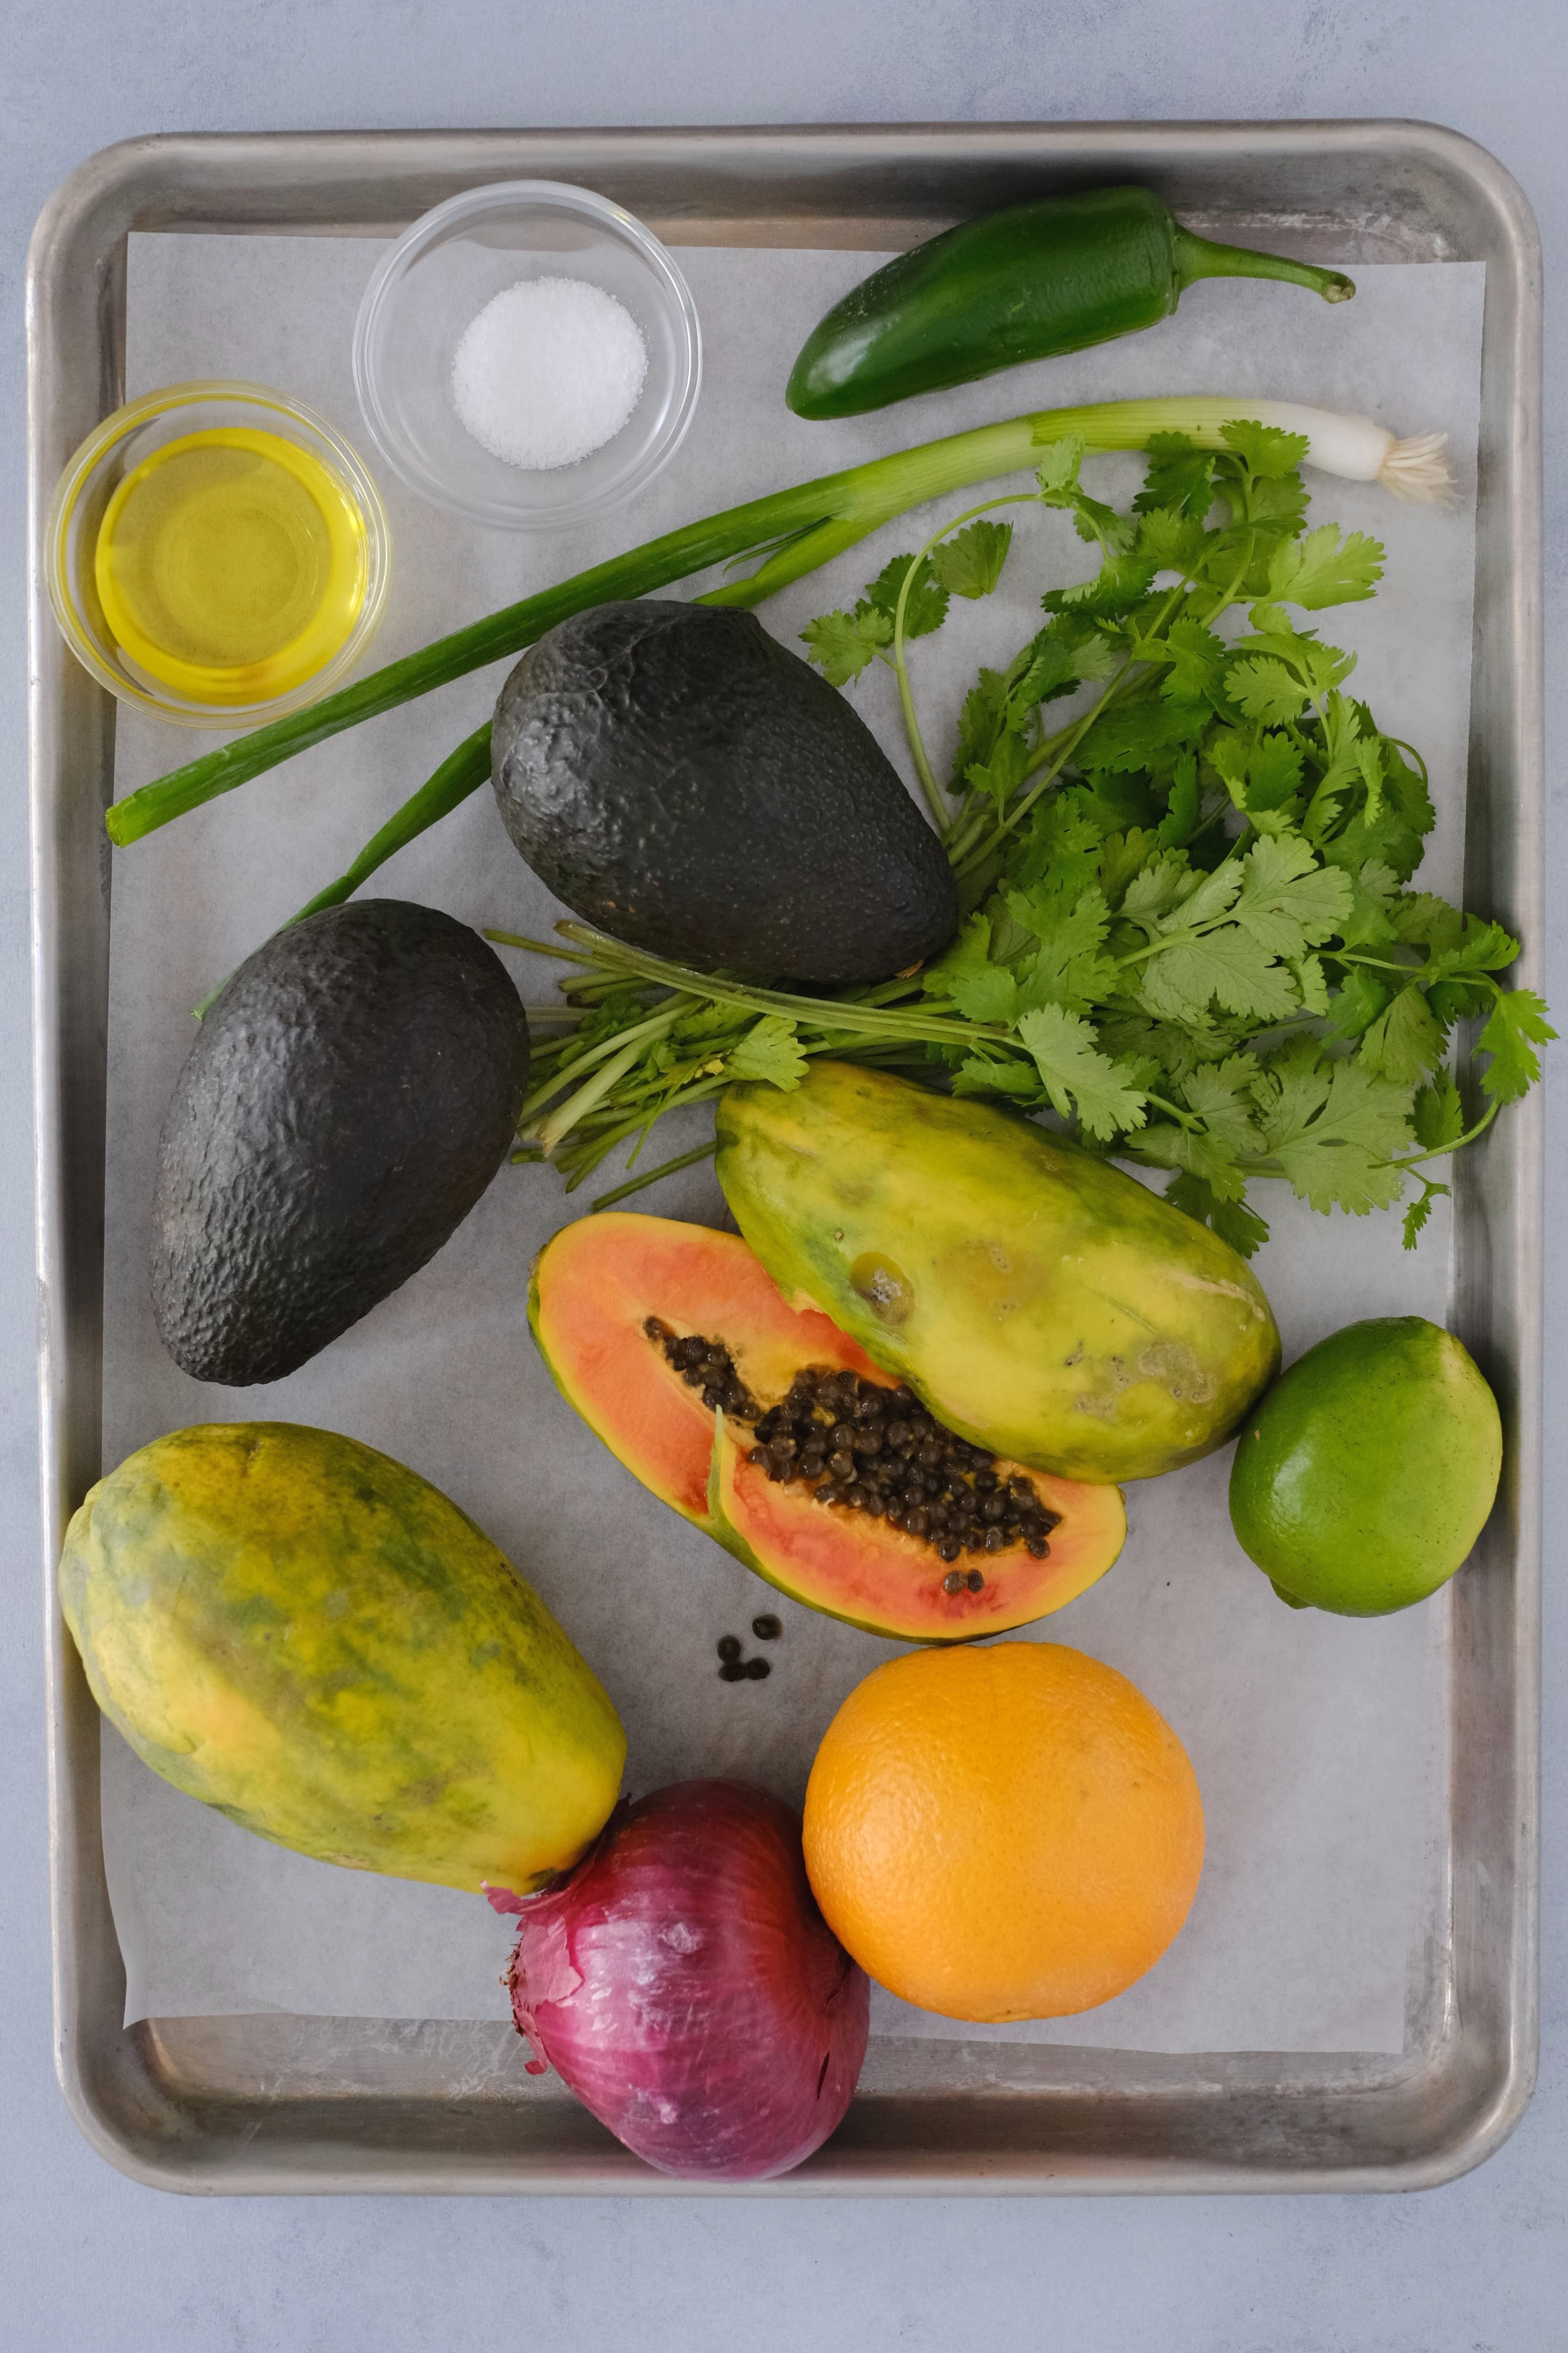 papaya avocado cilantro ingredients on a backing sheet